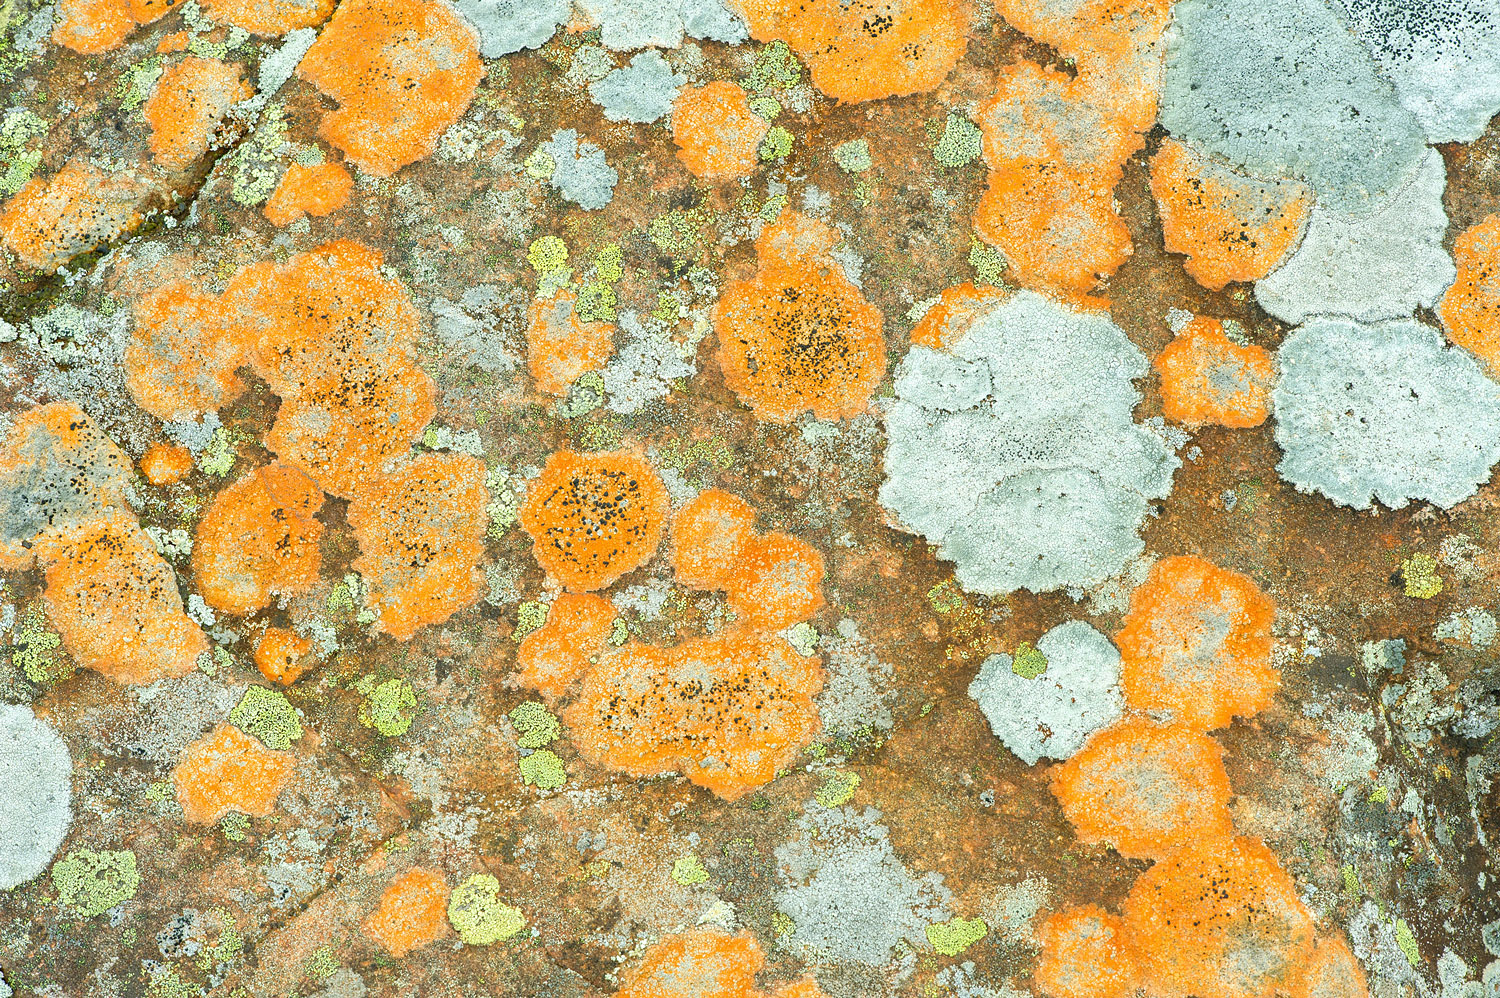 Orange Crustose Lichen